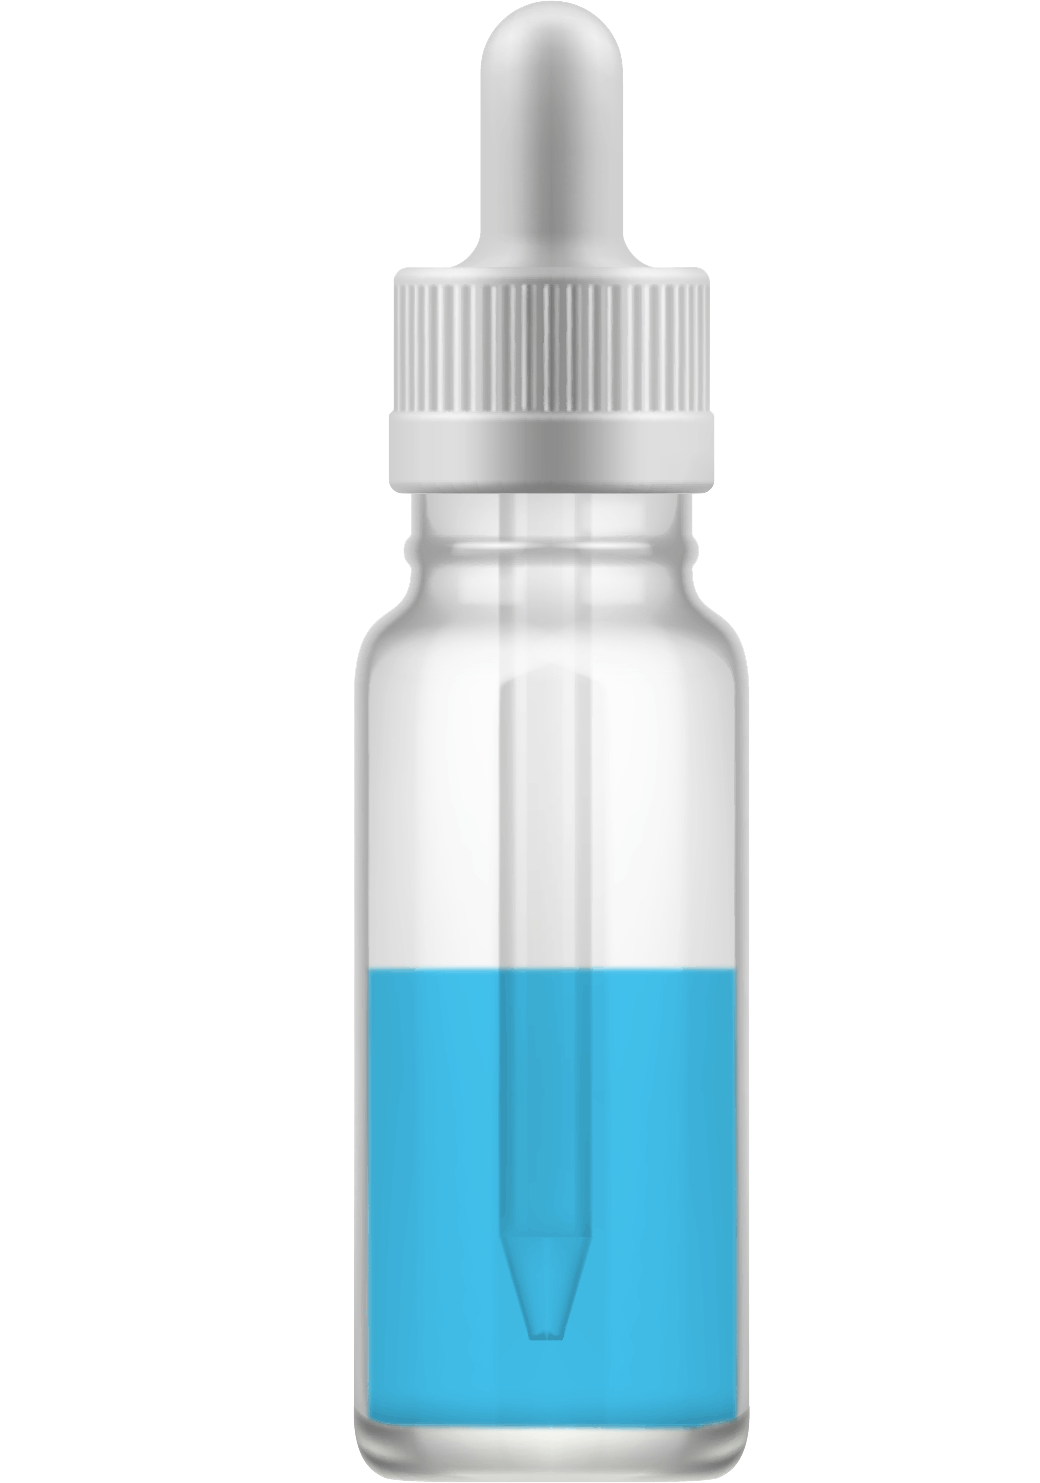 Why do new medicines. Open pill bottle png